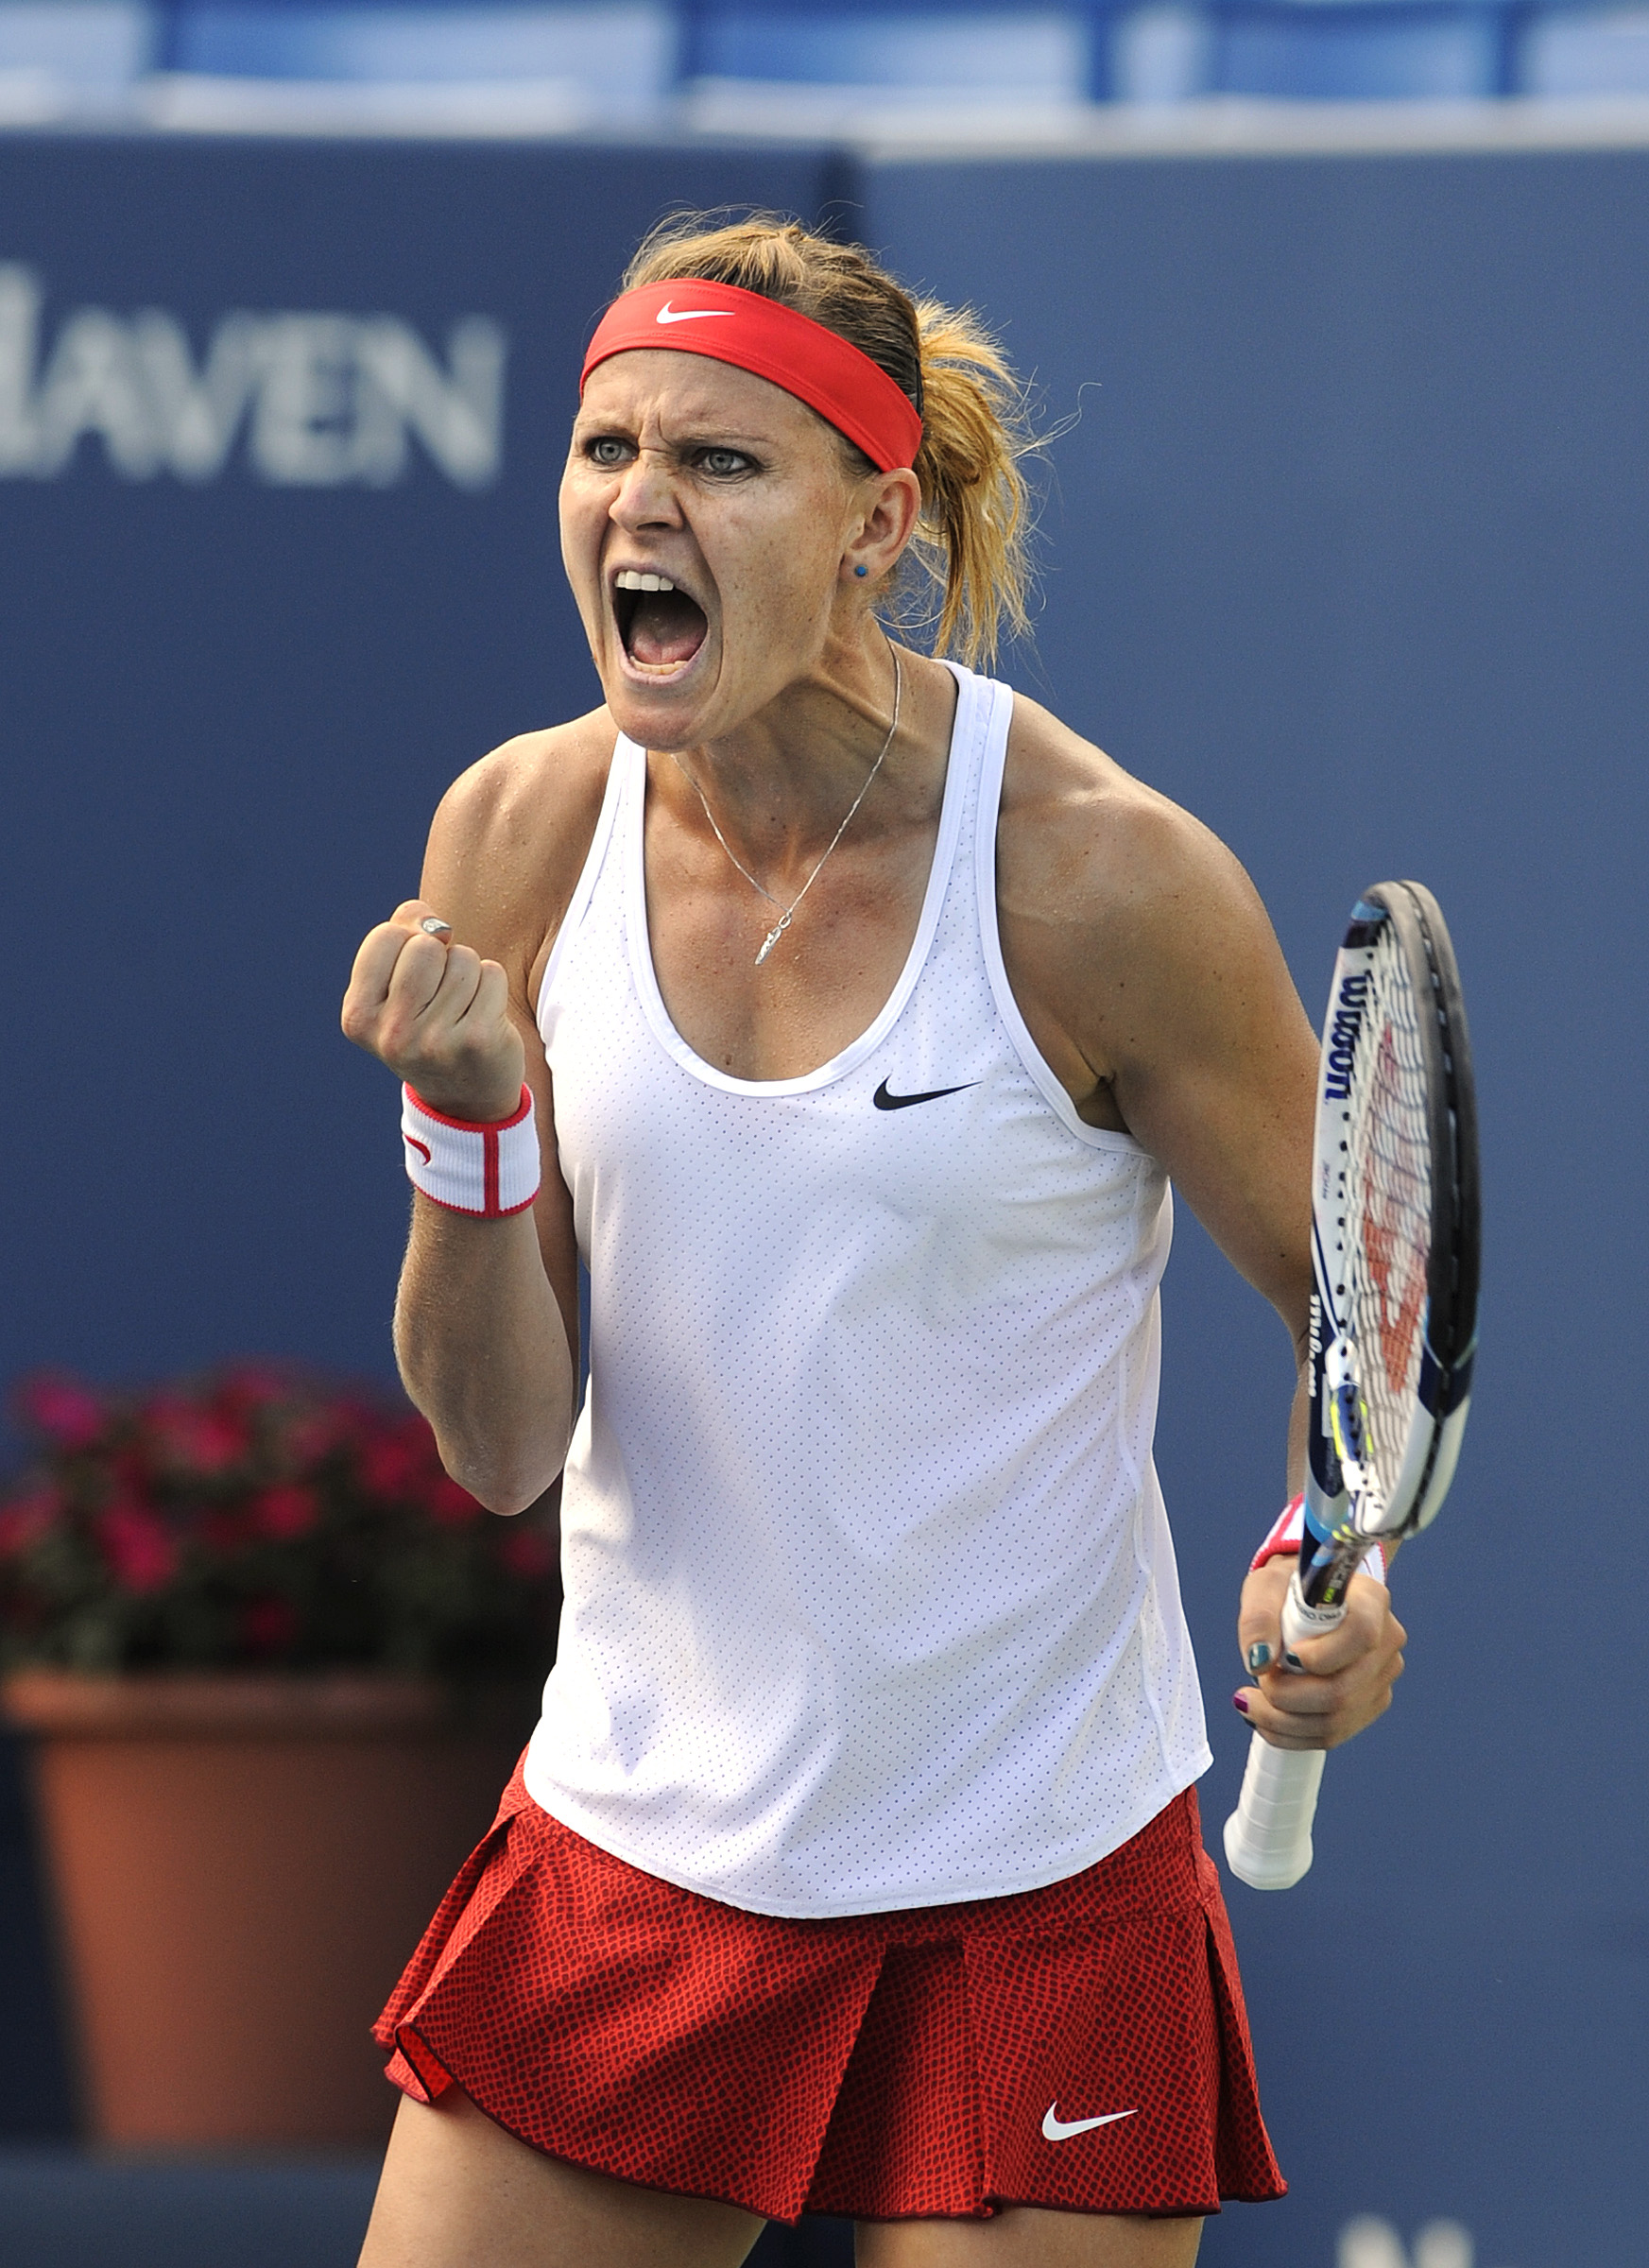 Lucie Safarova, of the Czech Republic, celebrates after her 6-2, 7-6 (4) victory over Leslie Tsurenko, of Ukraine, in their semifinal match at the Connecticut Open tennis tournament in New Haven, Conn., on Friday, Aug. 28, 2015. (AP Photo/Fred Beckham)